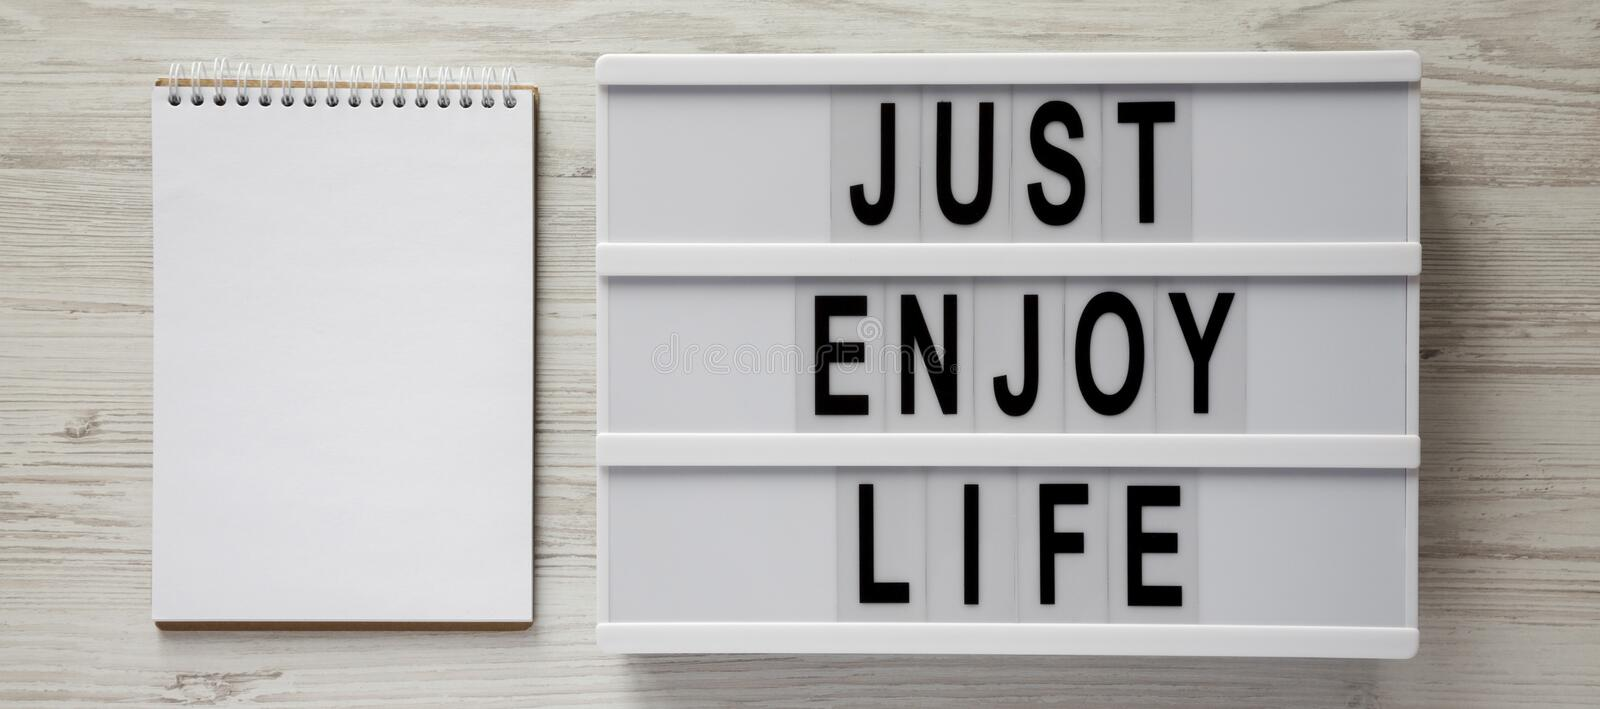 A lightbox with `Just enjoy life` words, blank notepad on a white wooden surface, top view. Copy space stock photography